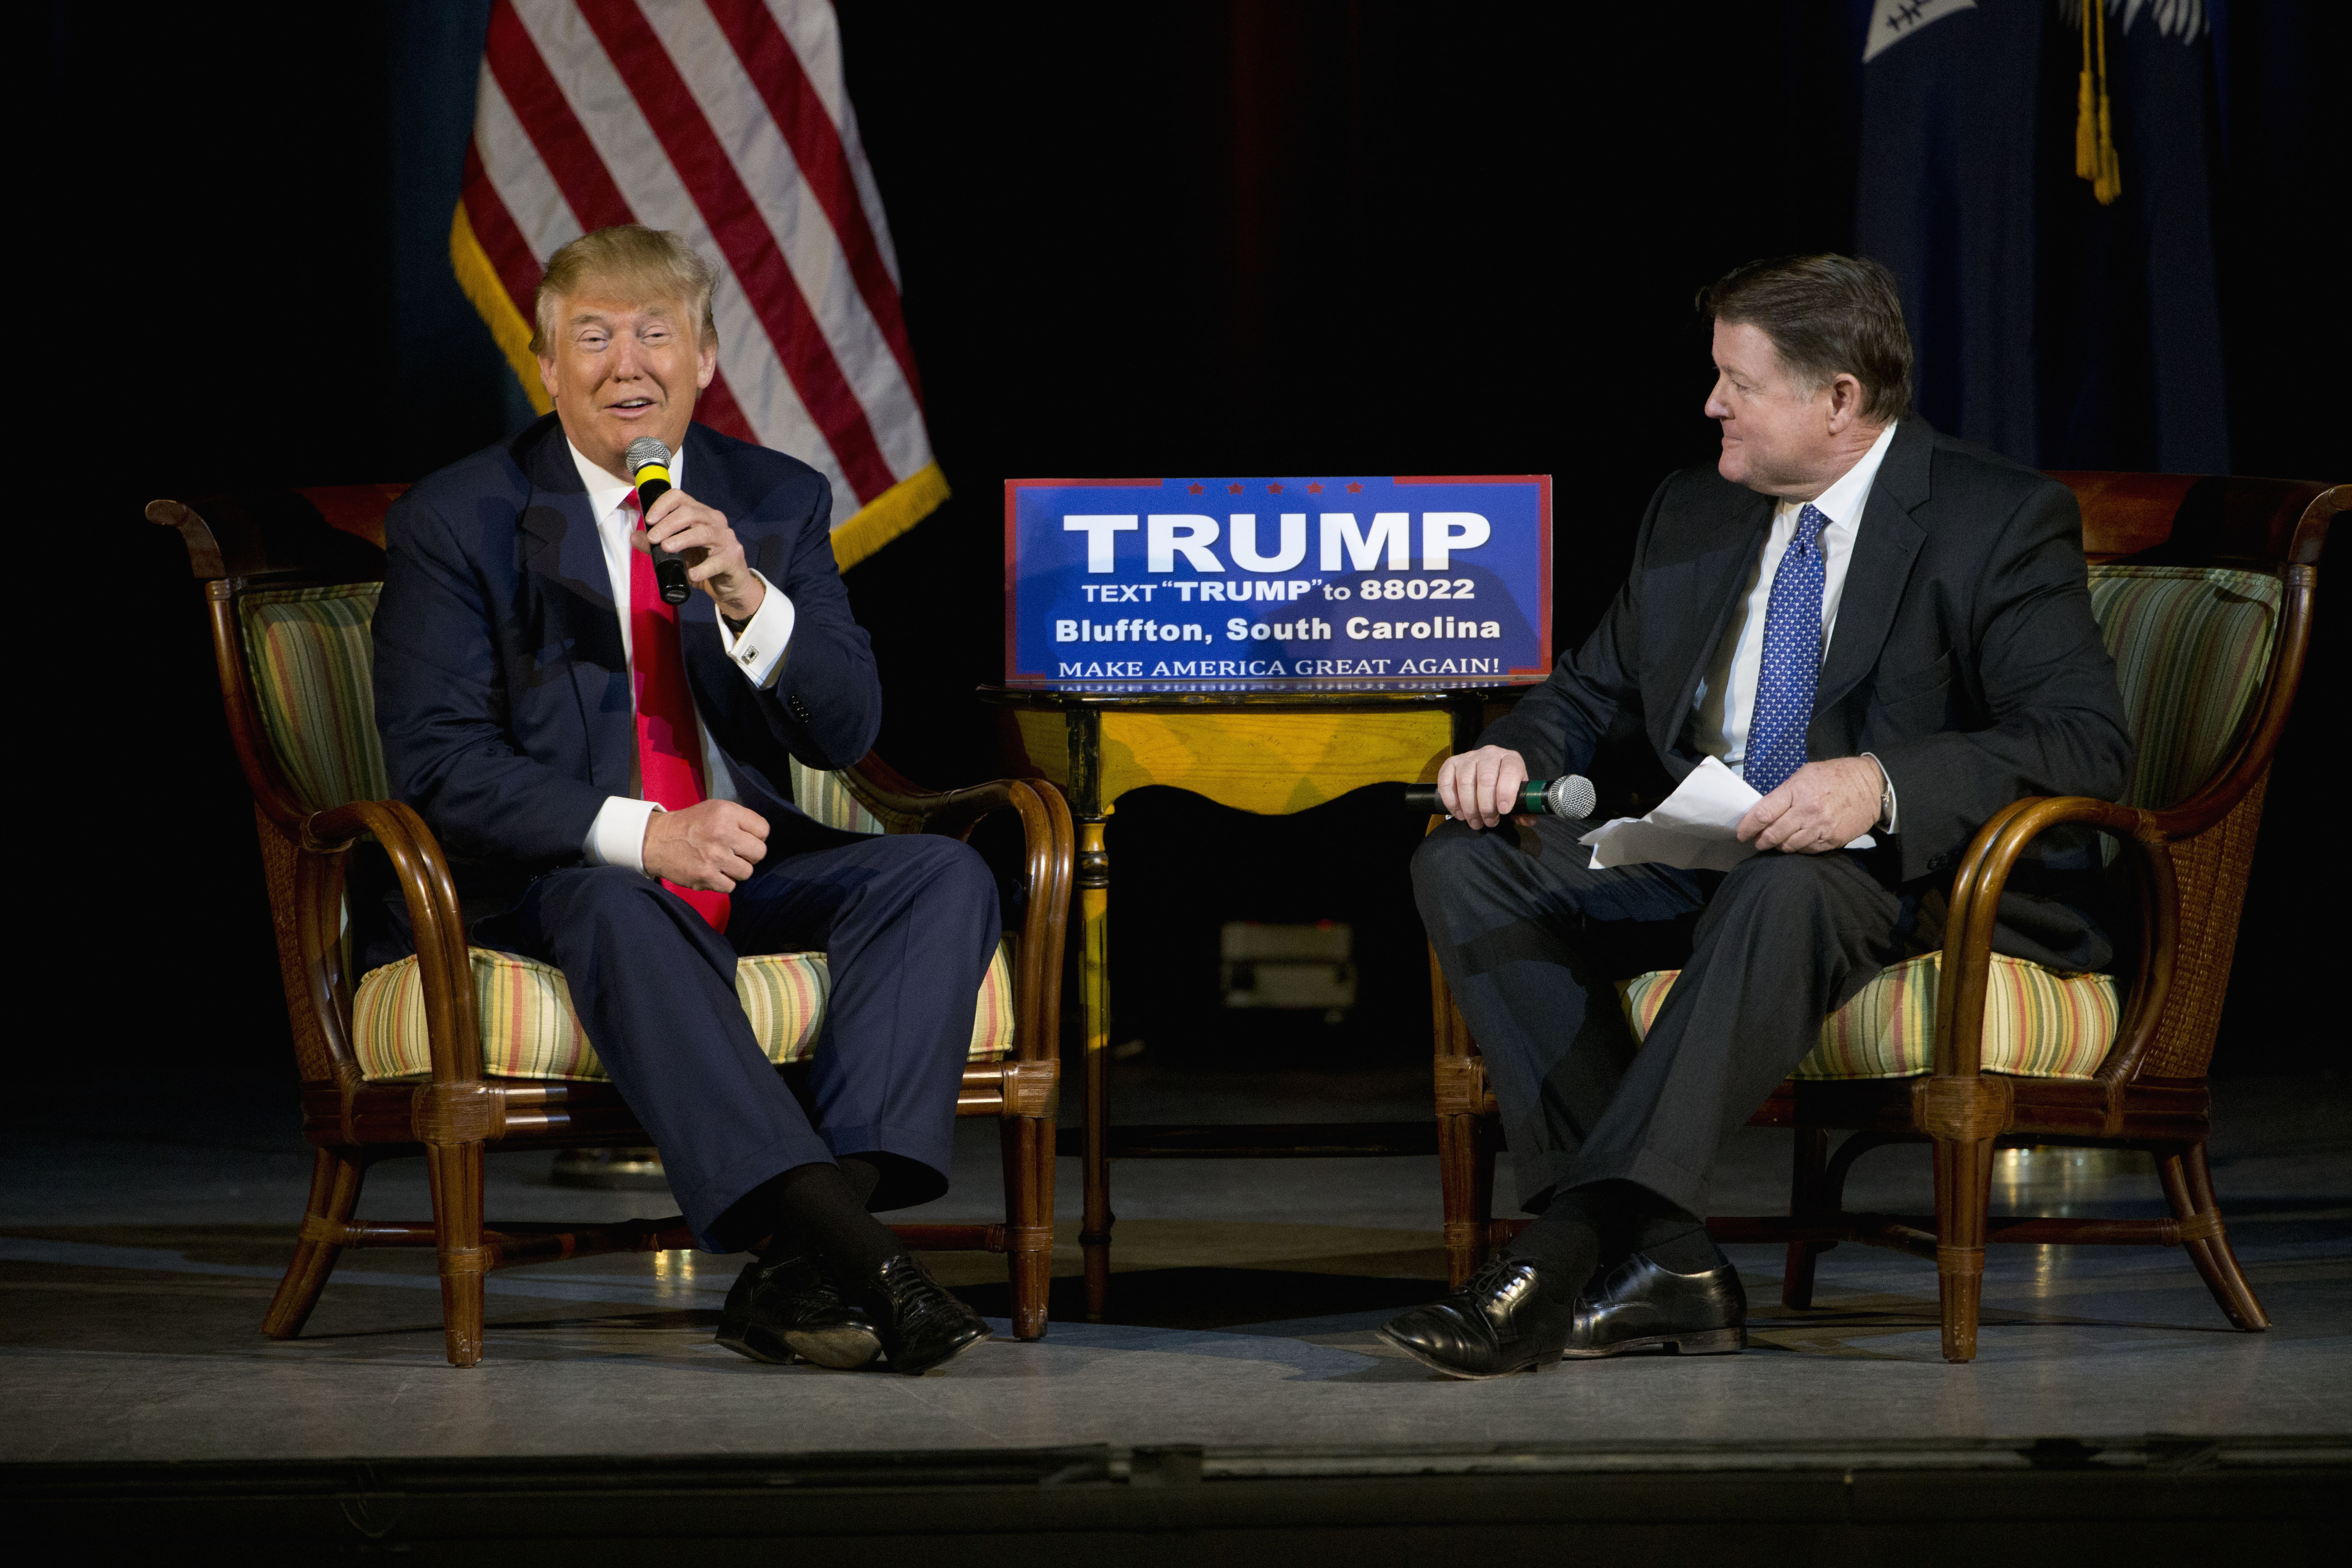 Republican presidential candidate Donald Trump, left, accompanied by South Carolina State Rep. Bill Herbkersman R-Beaufort, speaks during a campaign stop, Wednesday, Feb. 17, 2016, in Bluffton, S.C. (AP Photo/Matt Rourke)